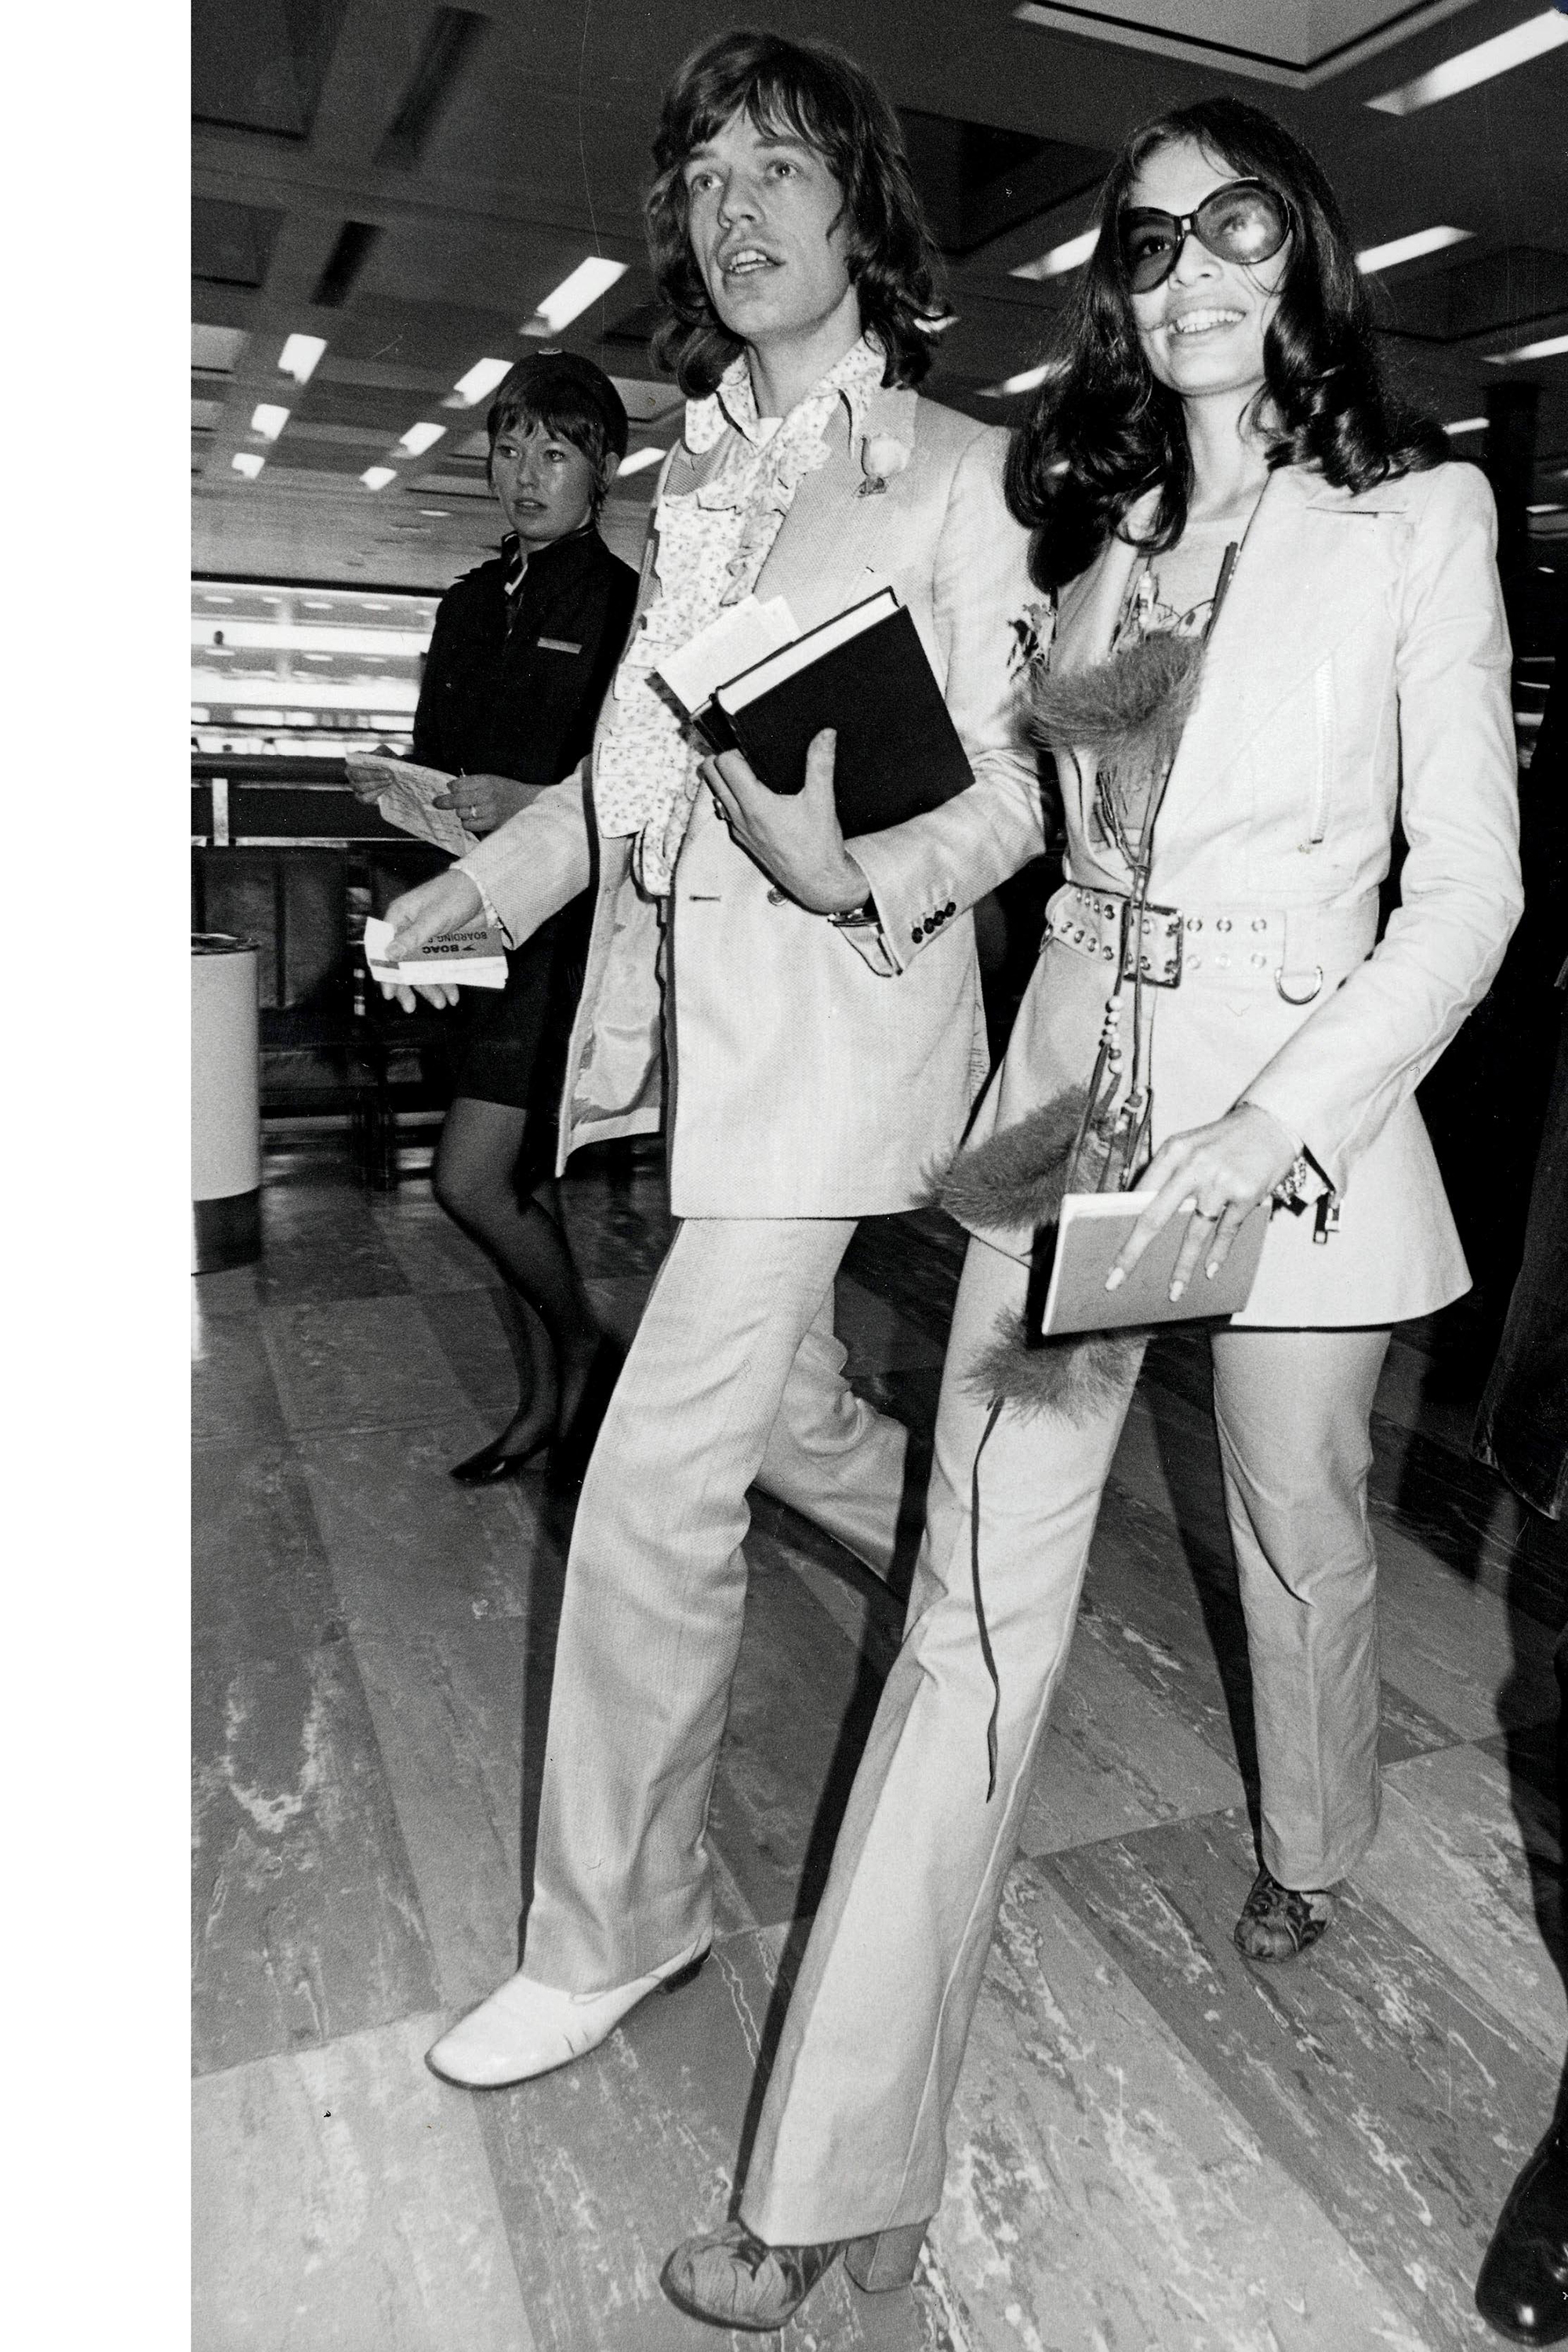 Vintage Photos Of Bianca Jagger 39 S Iconic Style Bianca Jagger 1970s Style